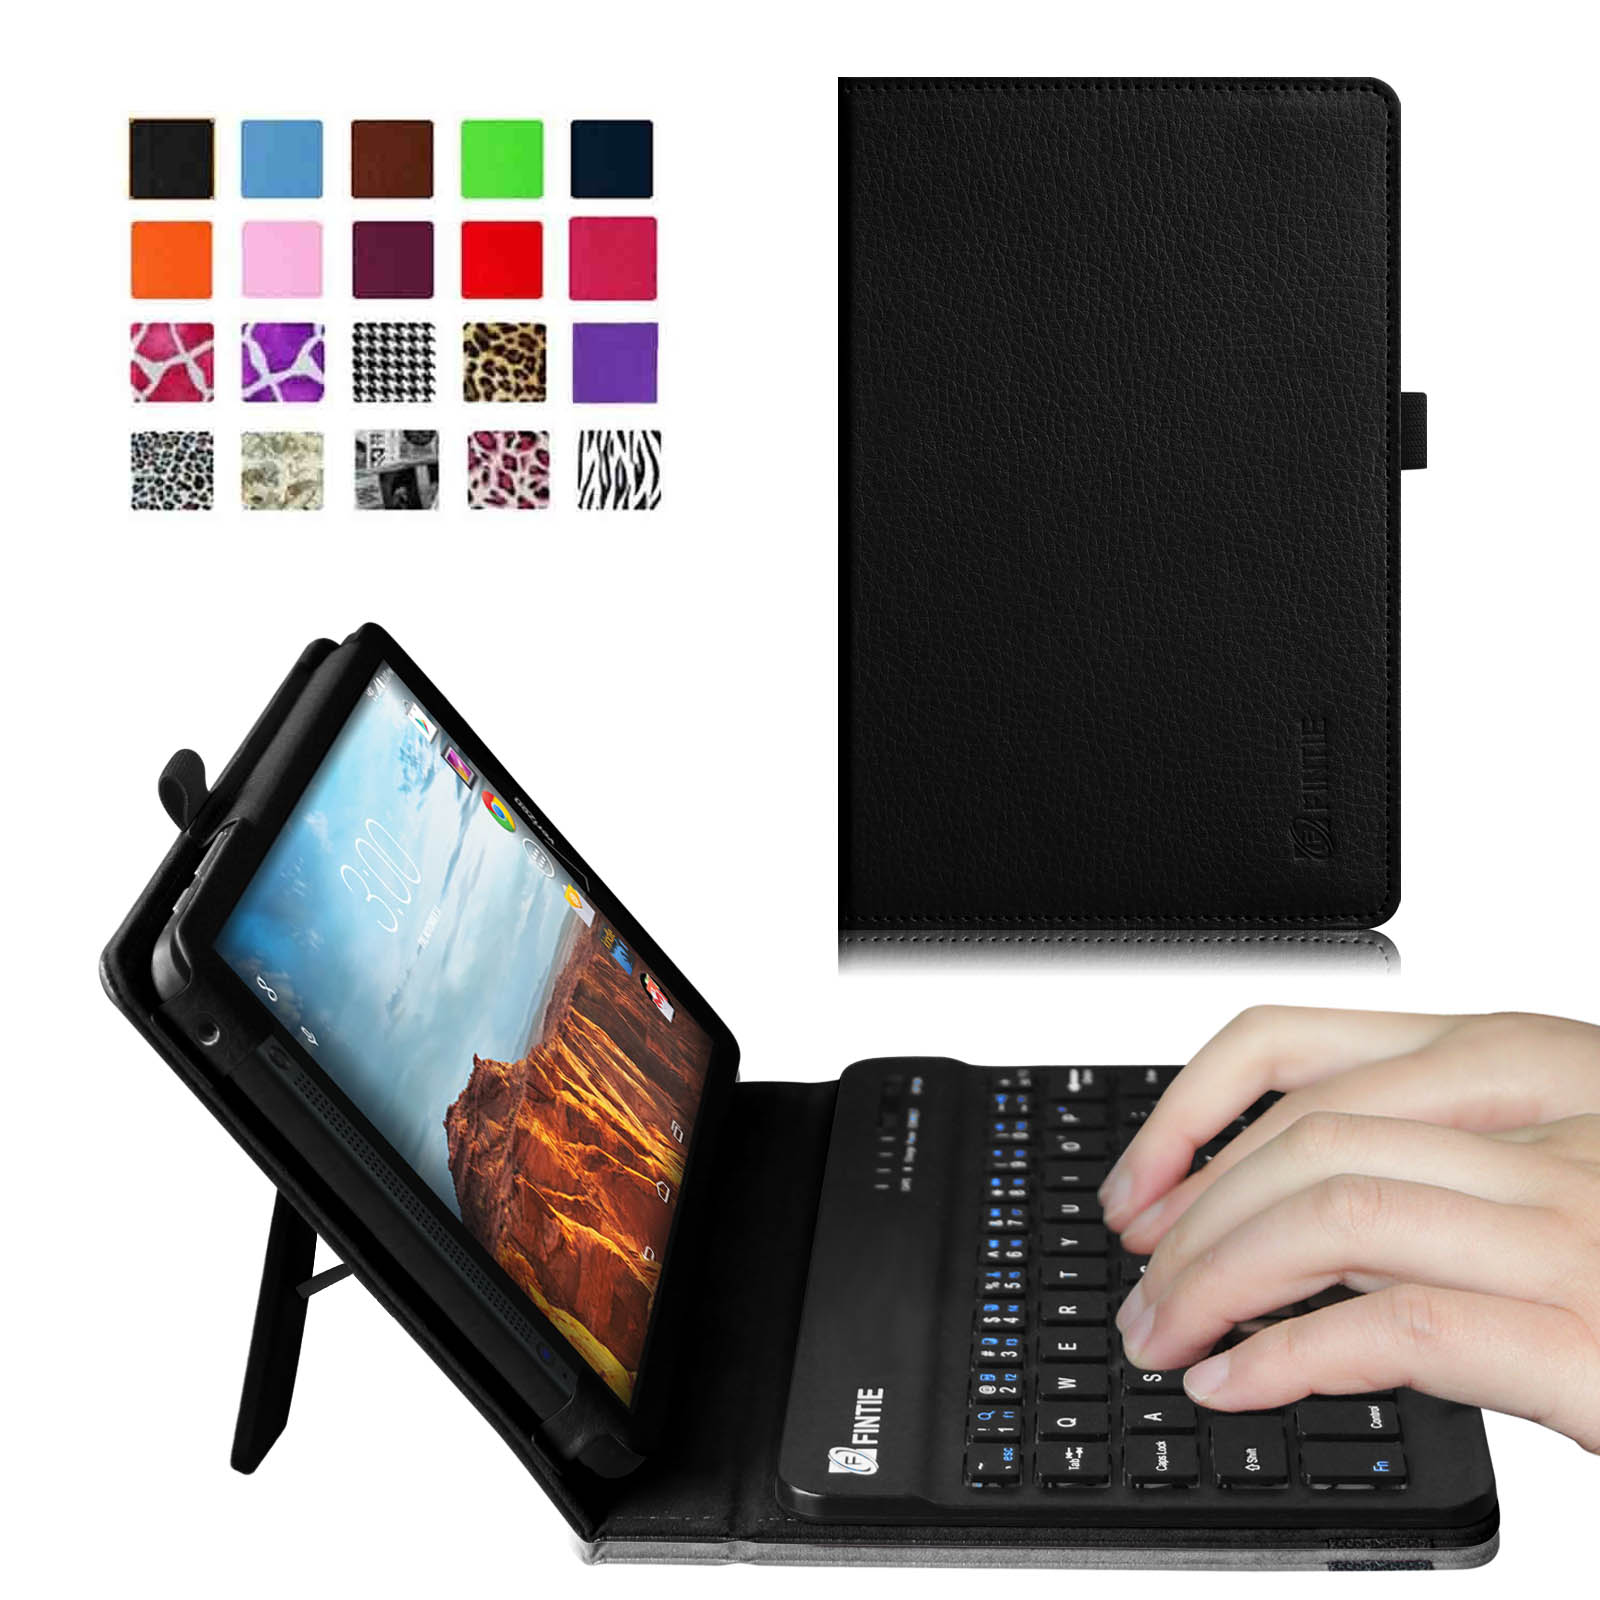 Verizon Ellipsis 8 4G LTE Tablet Keyboard Case - Fintie Slim Fit PU Leather Stand Cover with Removable Keyboard, Black